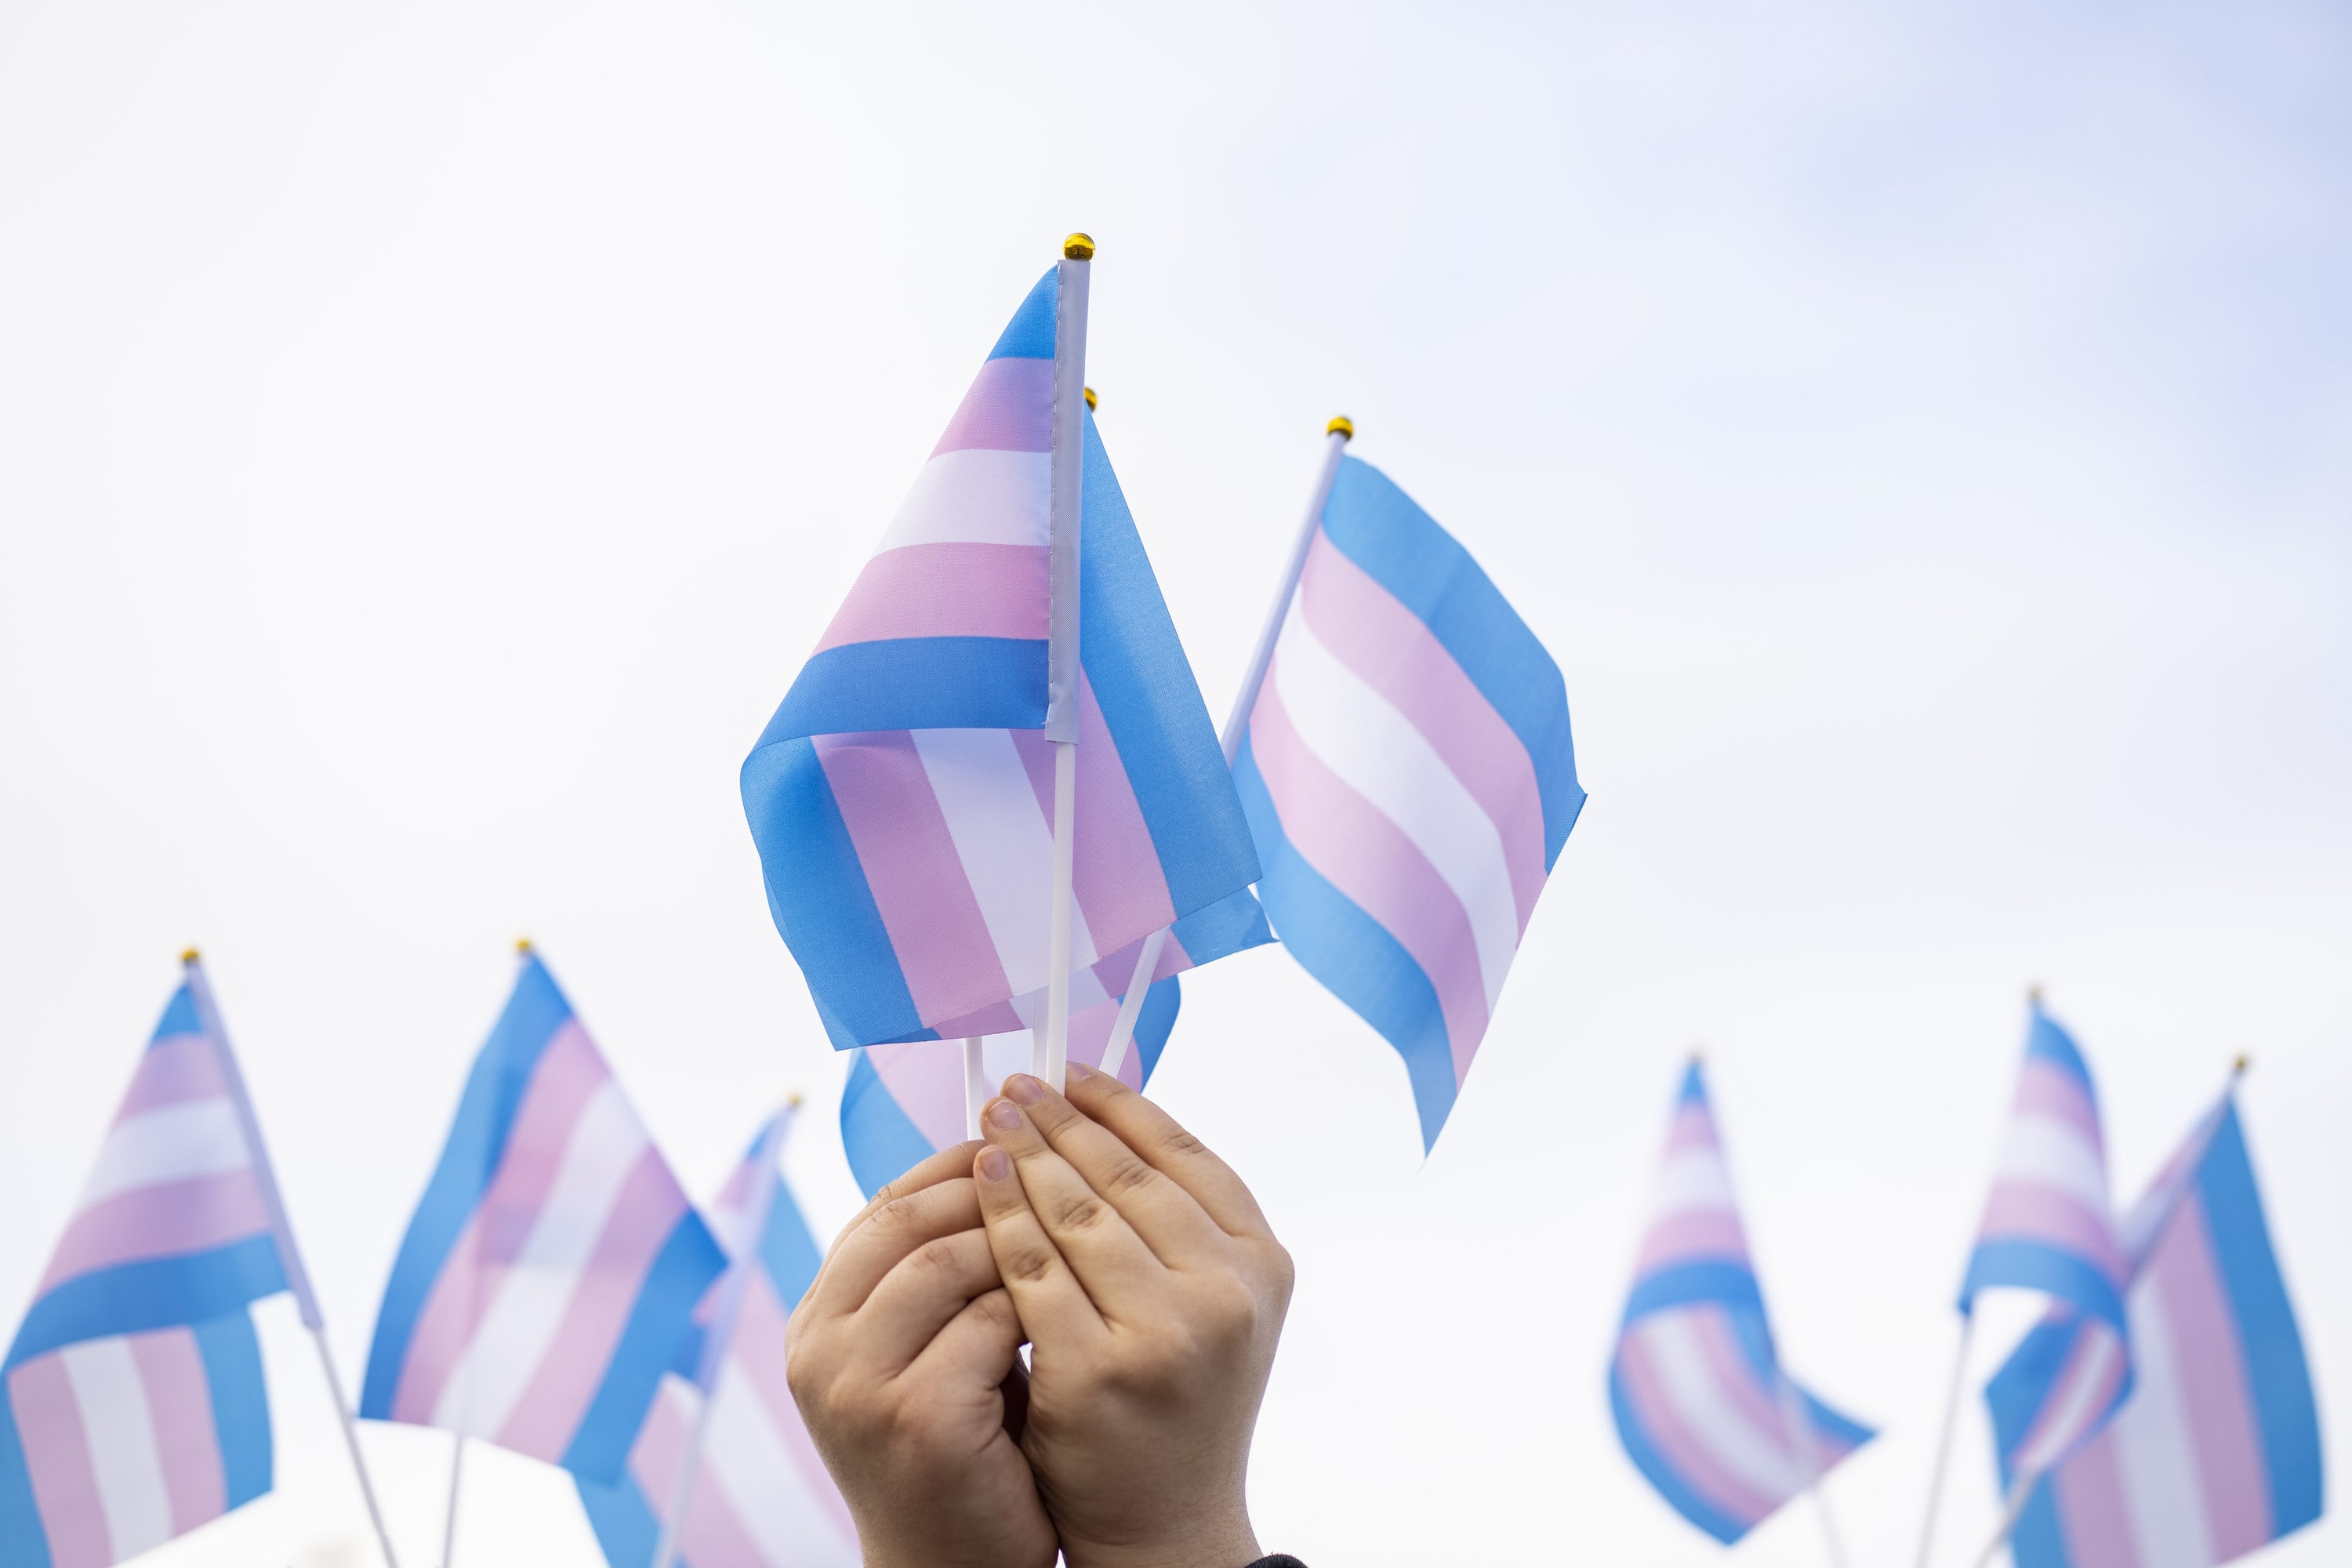 An image of hands holding up flags for Trans Rights